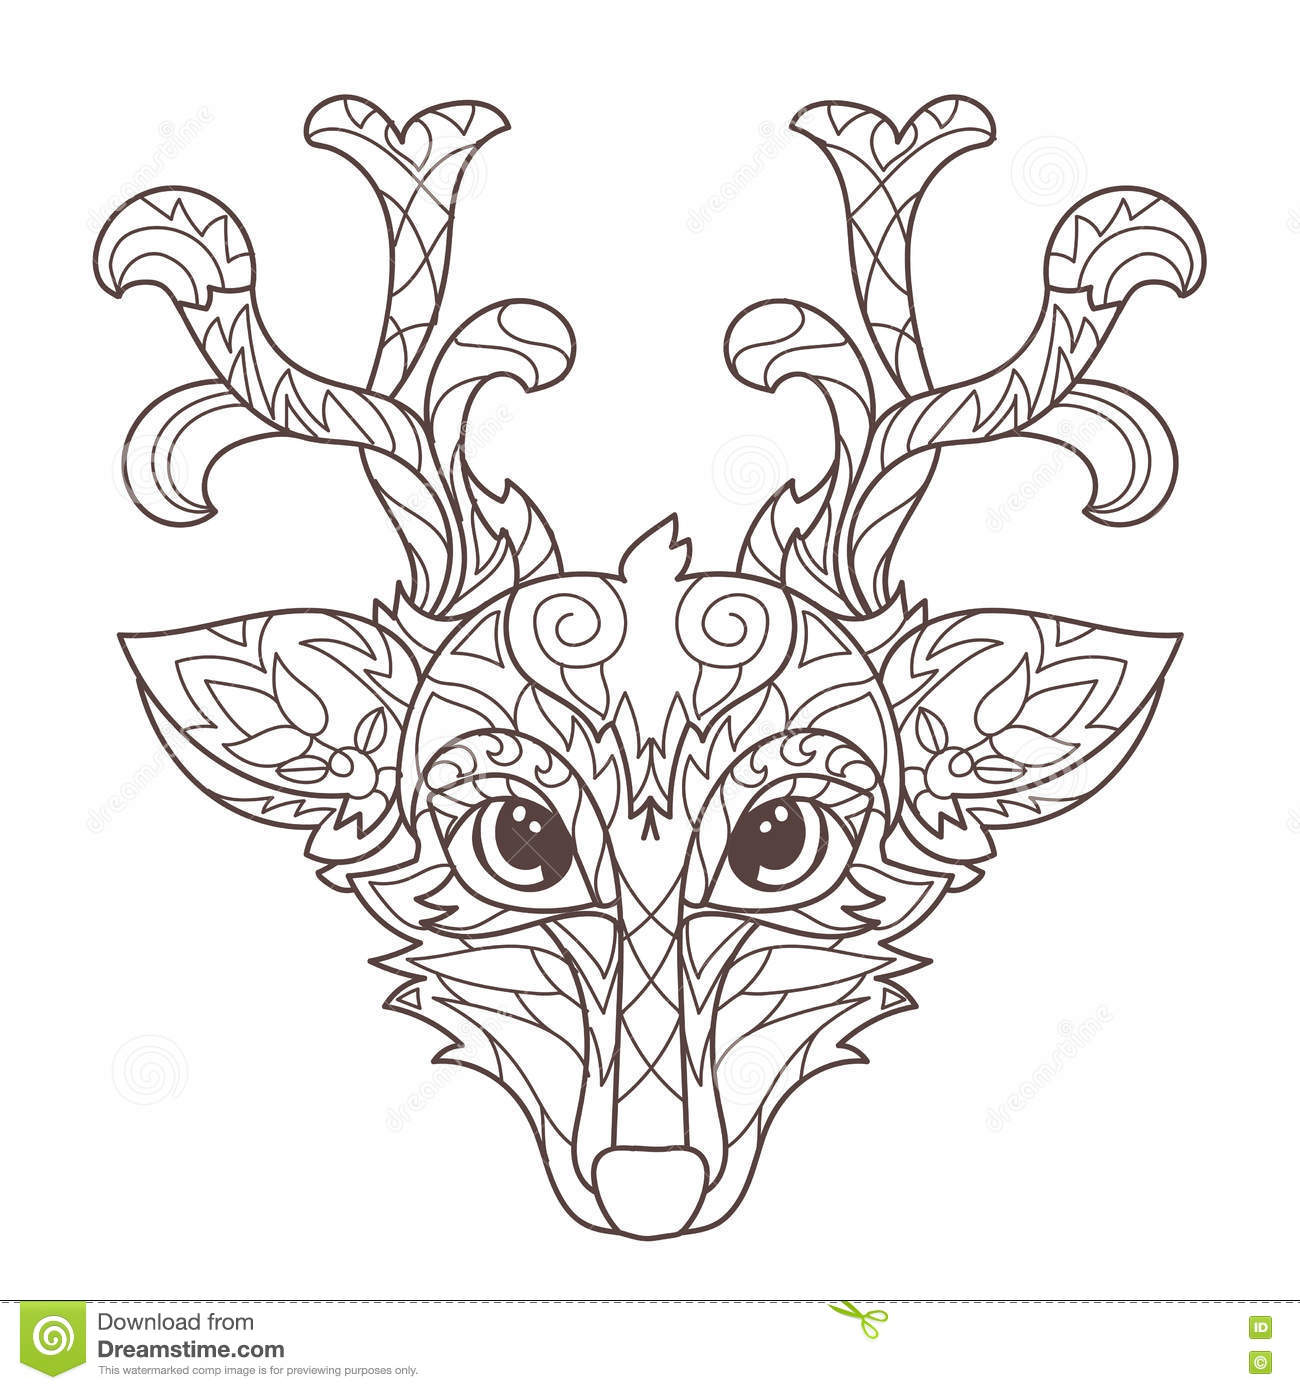 Hand Drawn Doodle Outline Deer Head Stock Vector - Illustration of ...